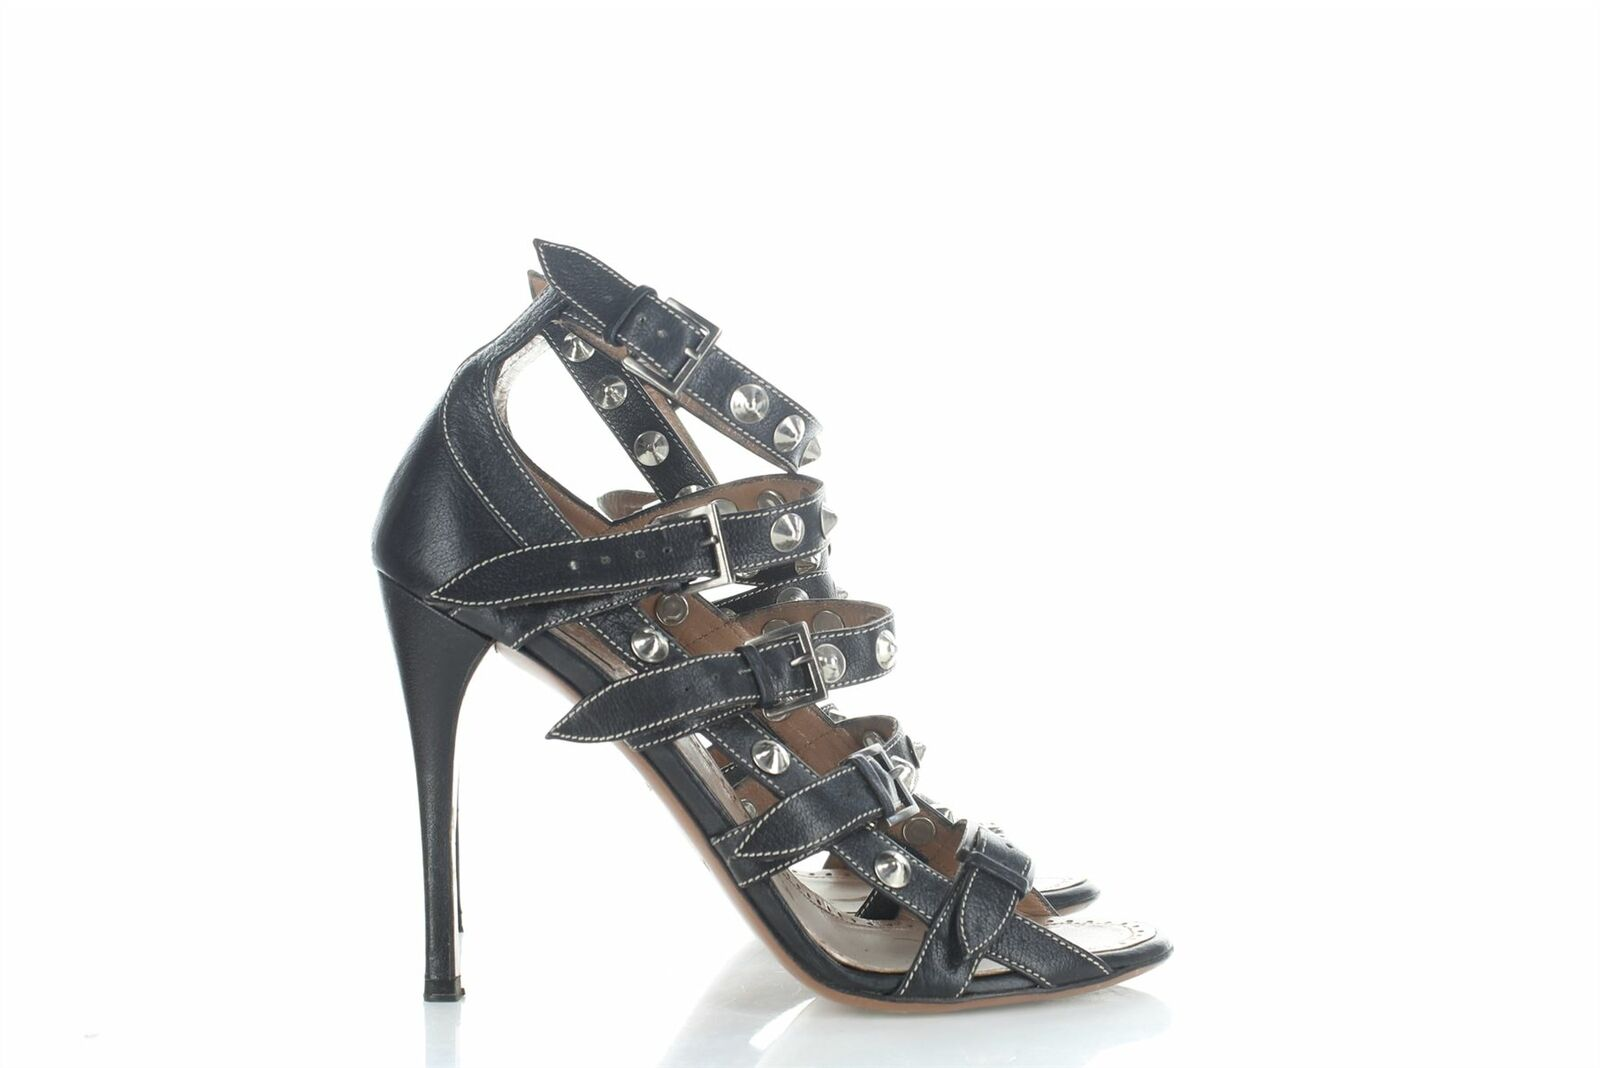 ALAIA Talons en cuir black, UK 5.5 US 8.5 EU 38.5 Heel 4.5